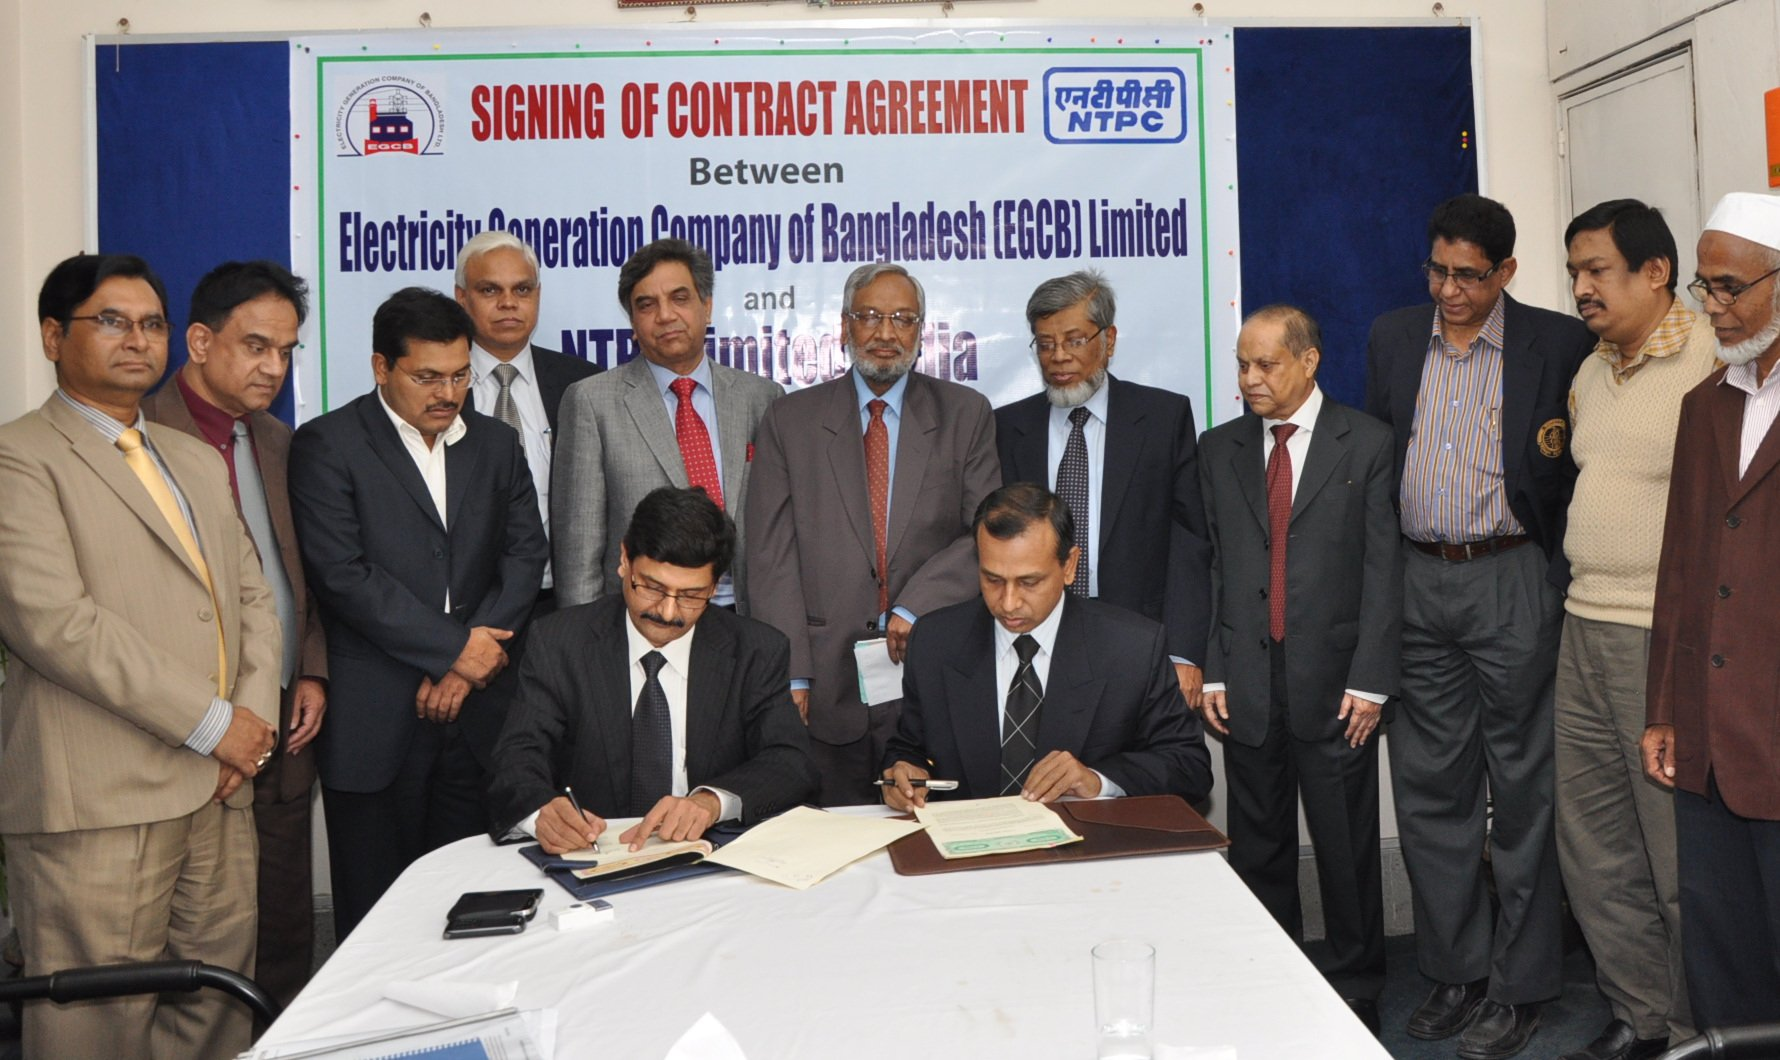 NTPC and EGCB ink Contract Agreement in Bangladesh